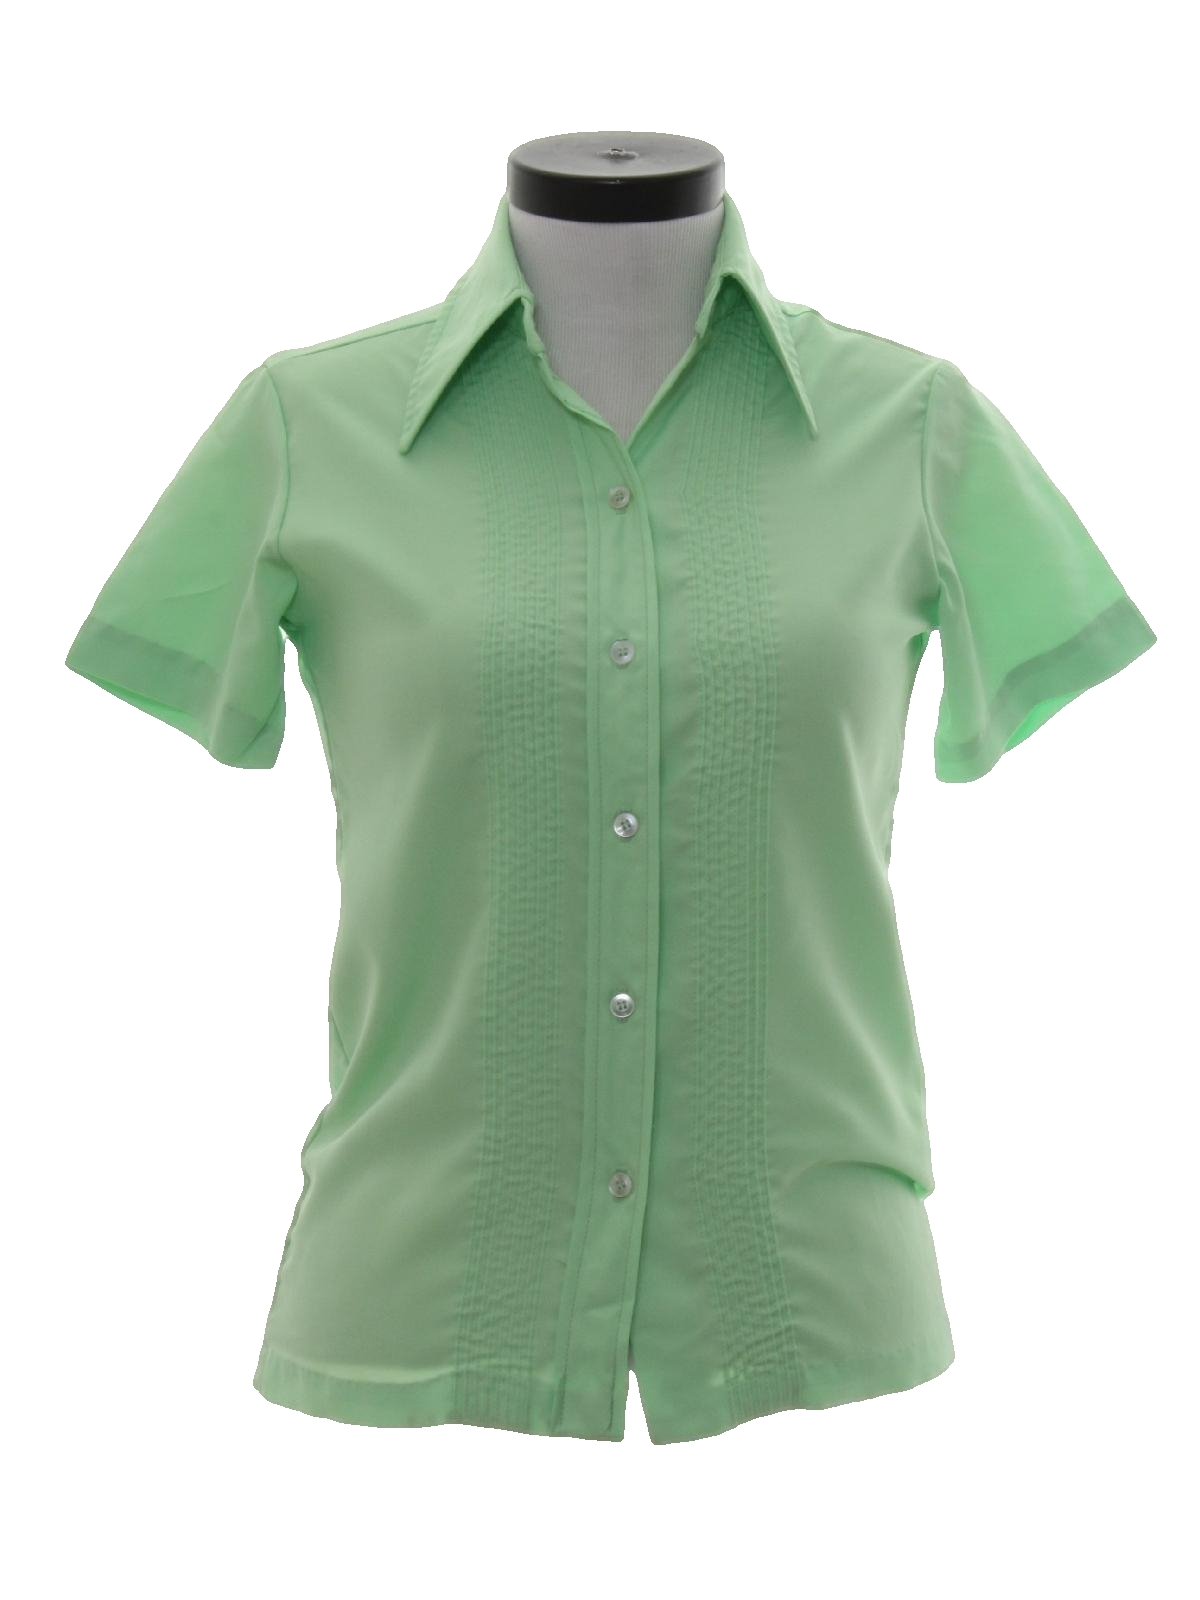 Retro 70s shirt 70s no label womens mint green for Solid color button up shirts